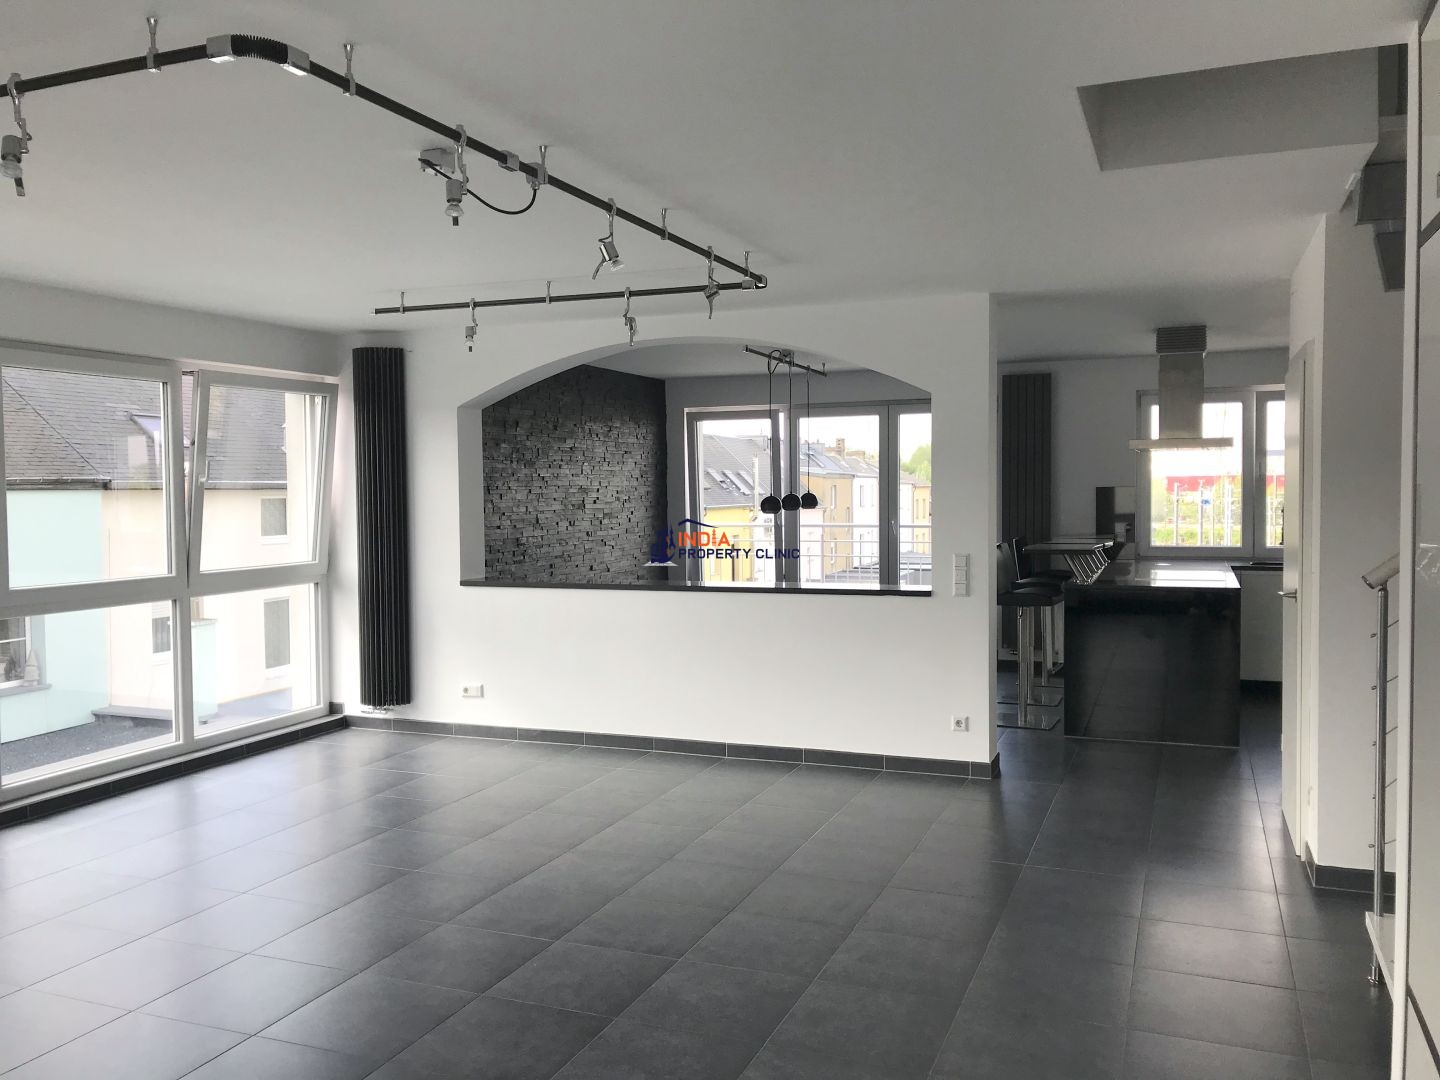 Apartment For Rent in Howald